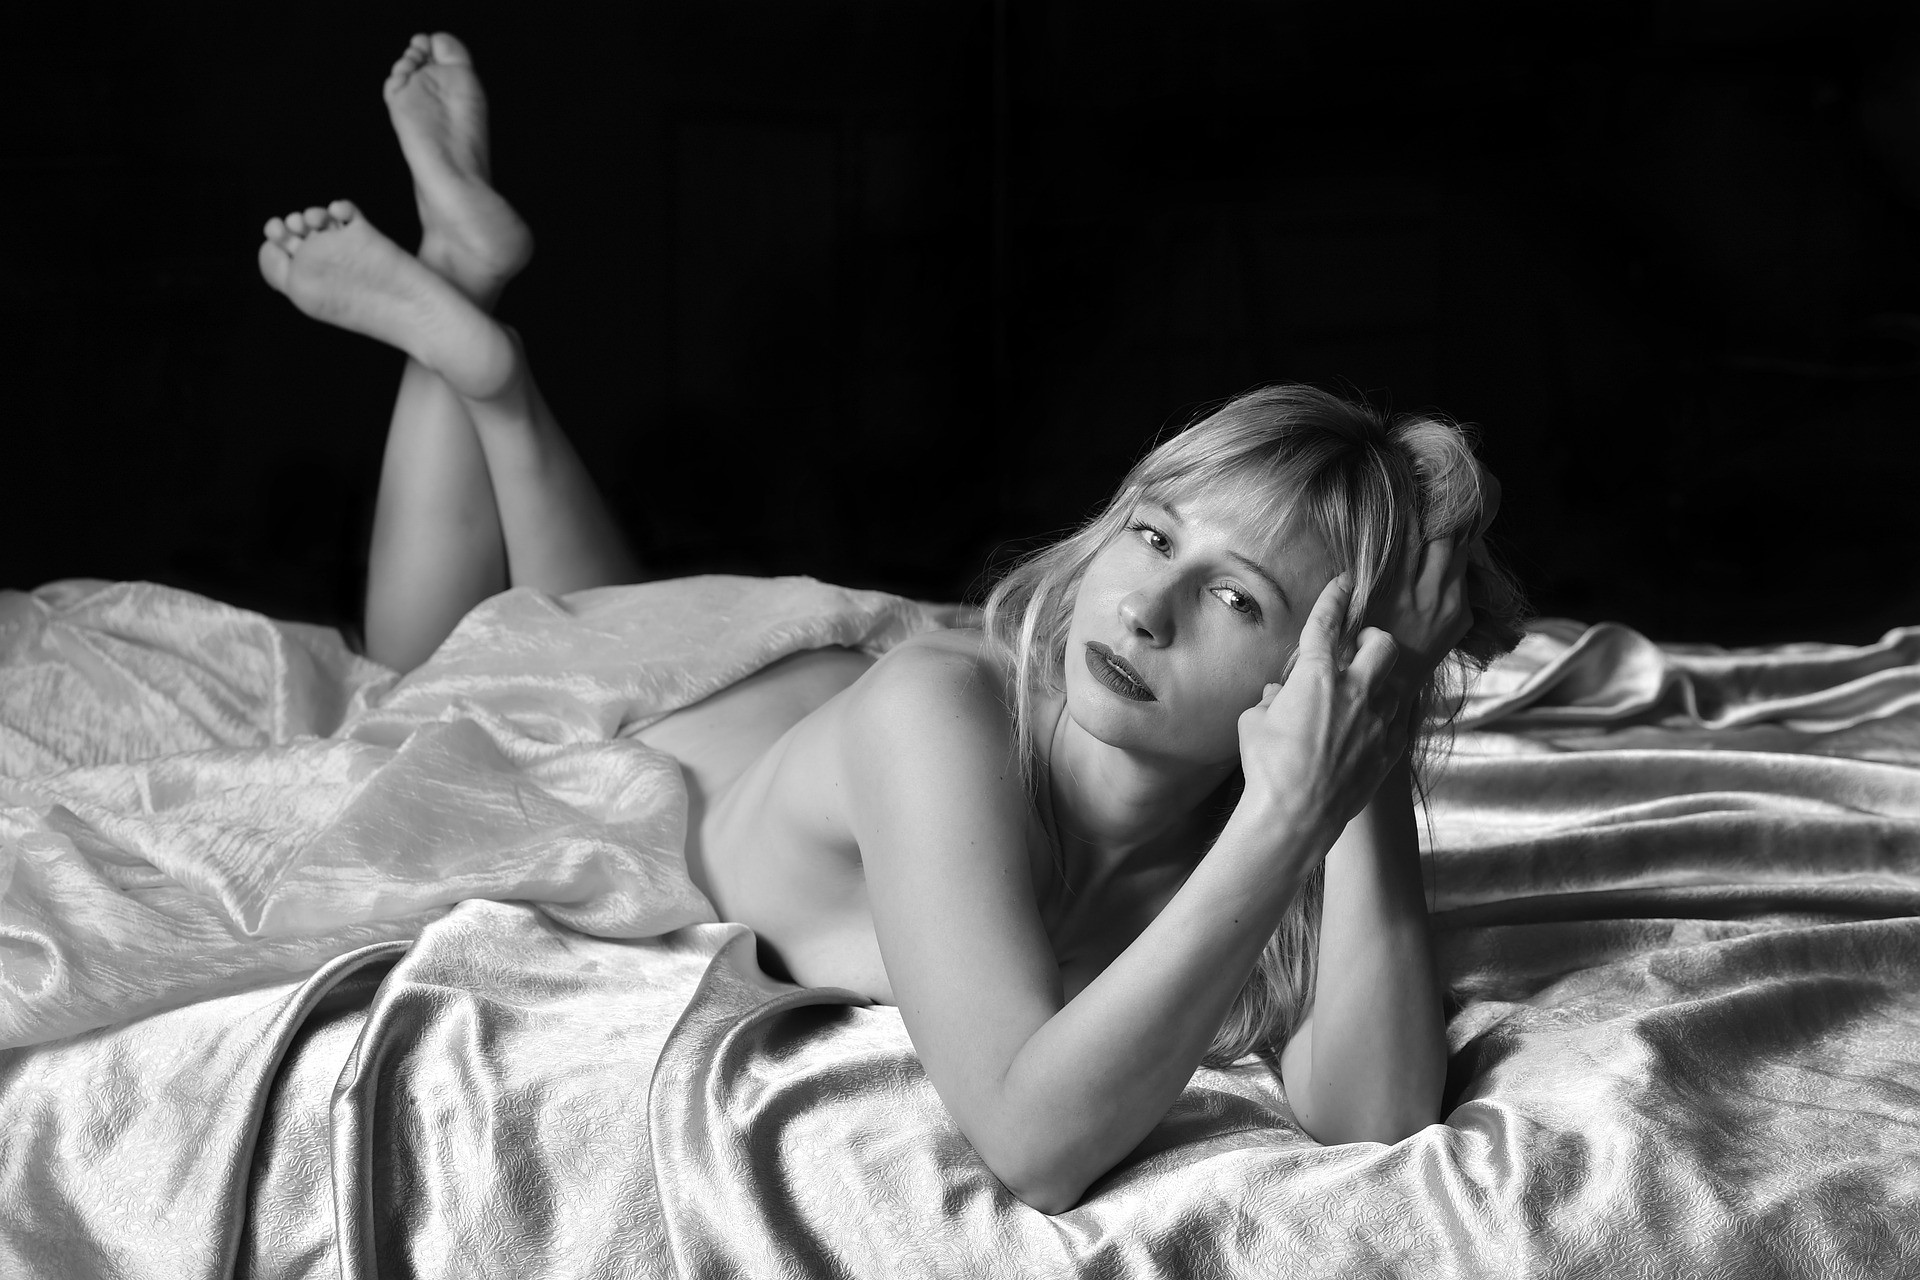 Photo of naked blonde woman lying on her stomach on a bed, feet raised behind her, buttocks covered by sheet